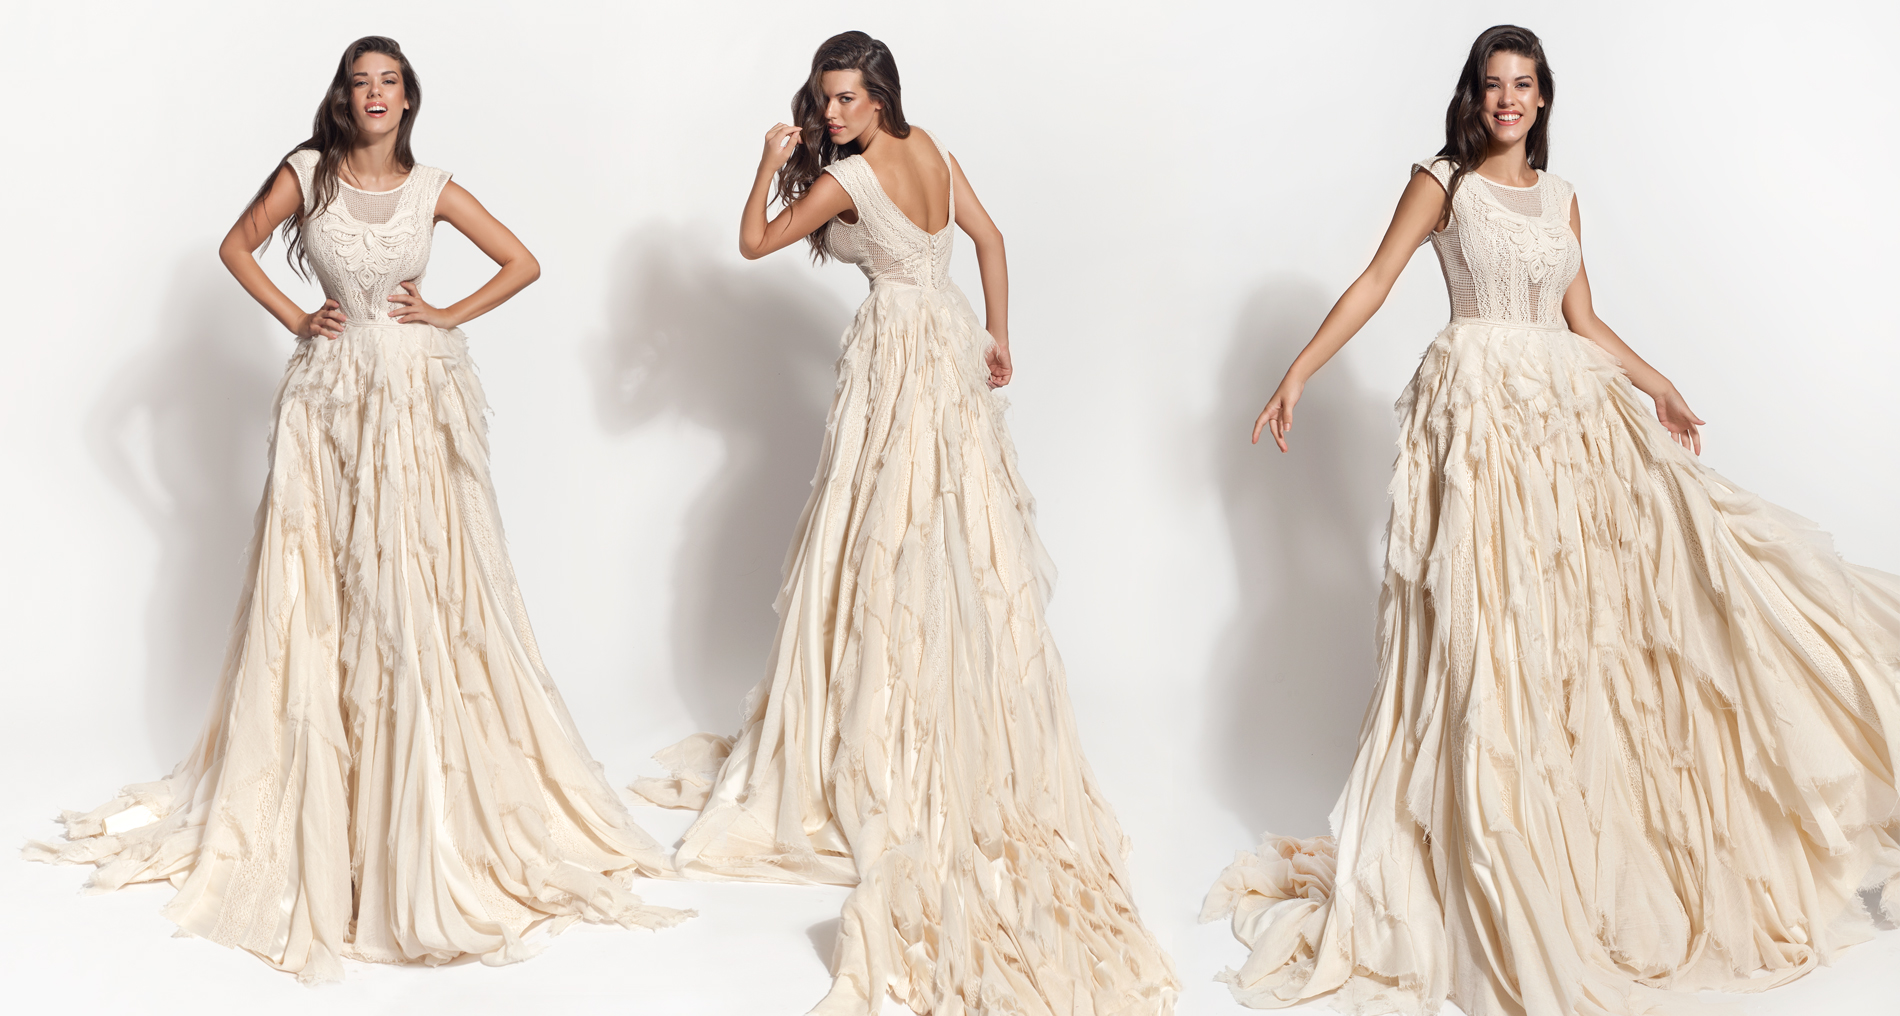 Calypso wedding dress from  Hellenic Vintage Core Collection